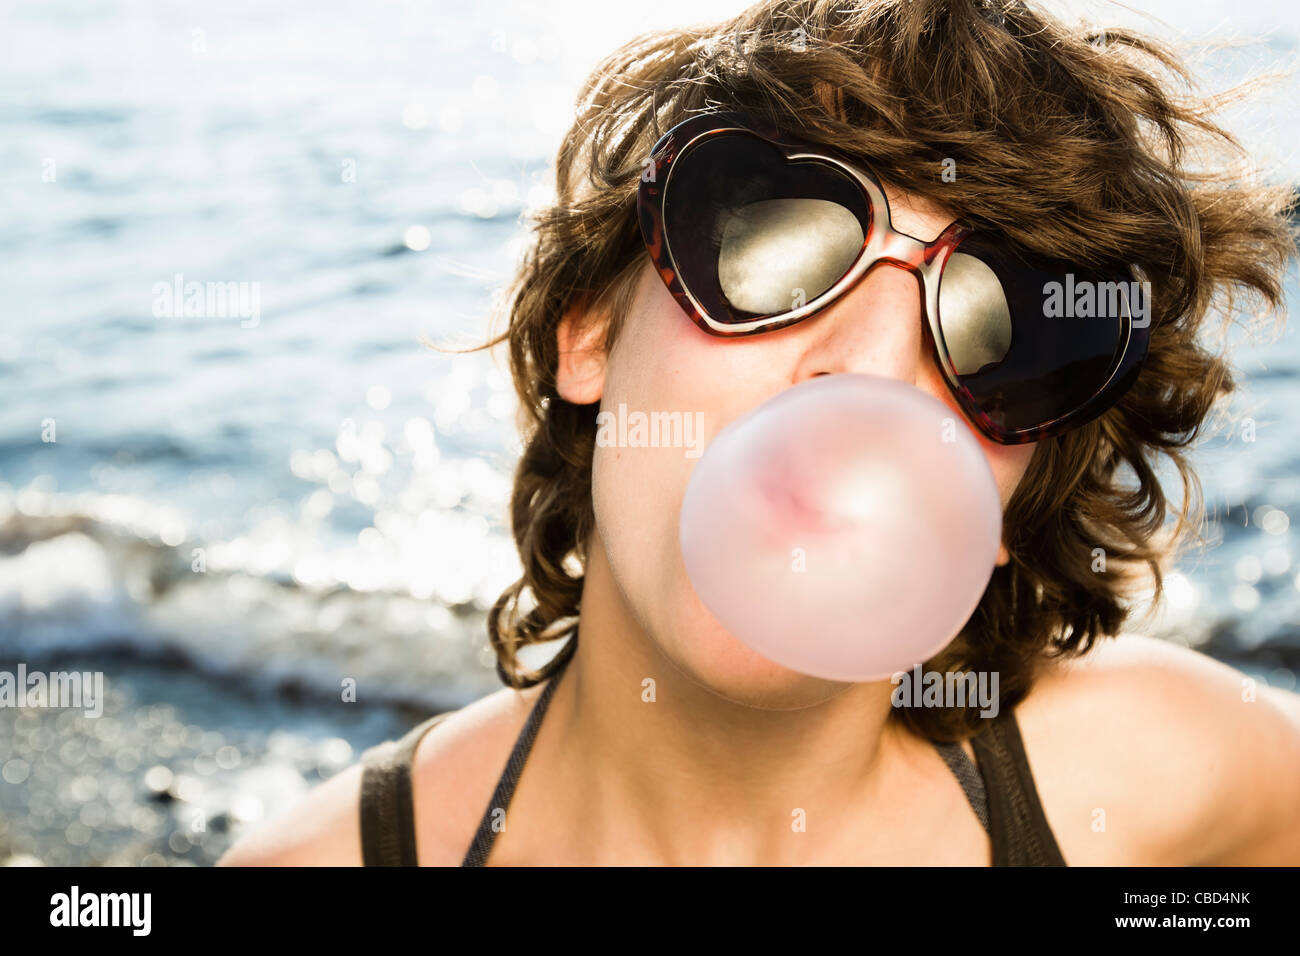 Woman blowing bubble on beach - Stock Image